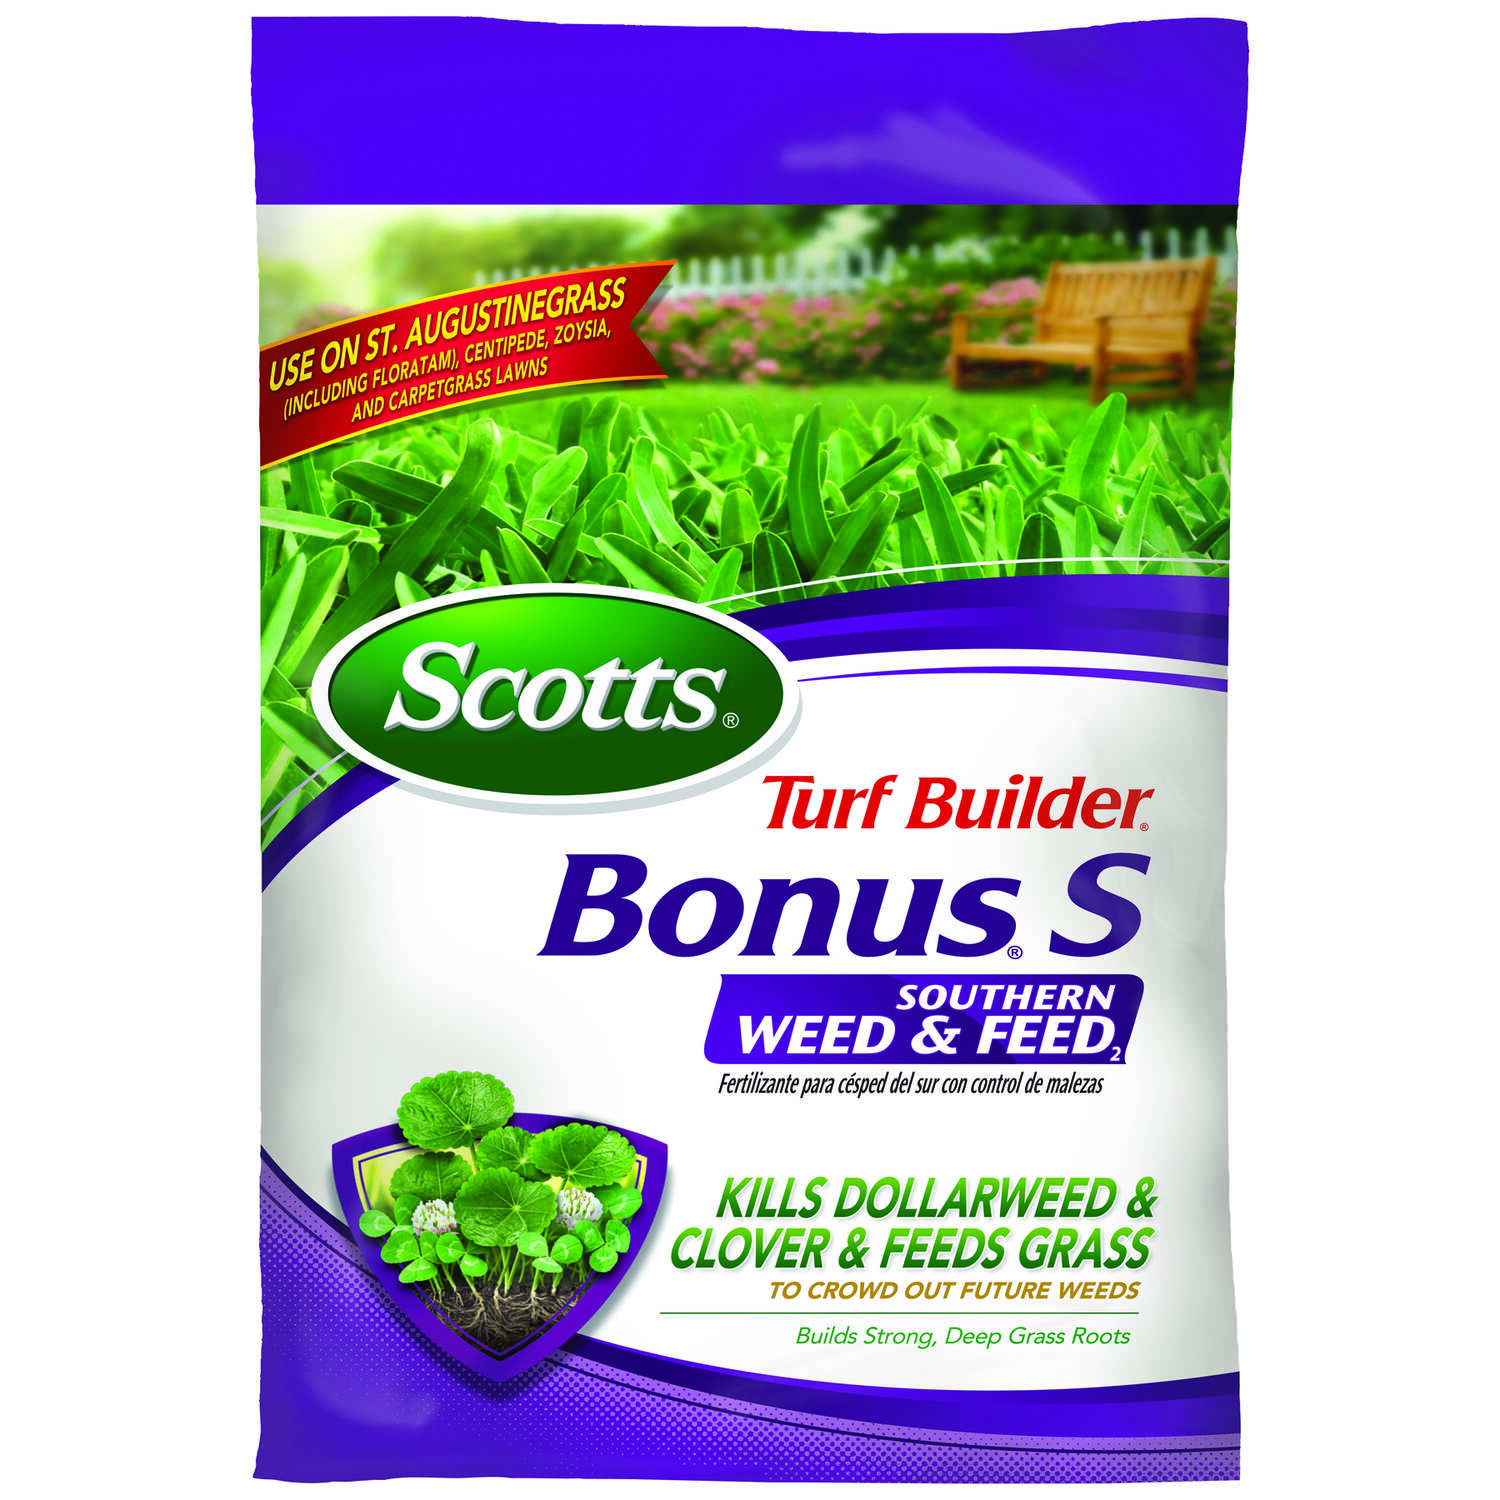 Scotts  Turf Builder Bonus S  Weed & Feed  Lawn Fertilizer  For Southern Grasses 5000 sq. ft.